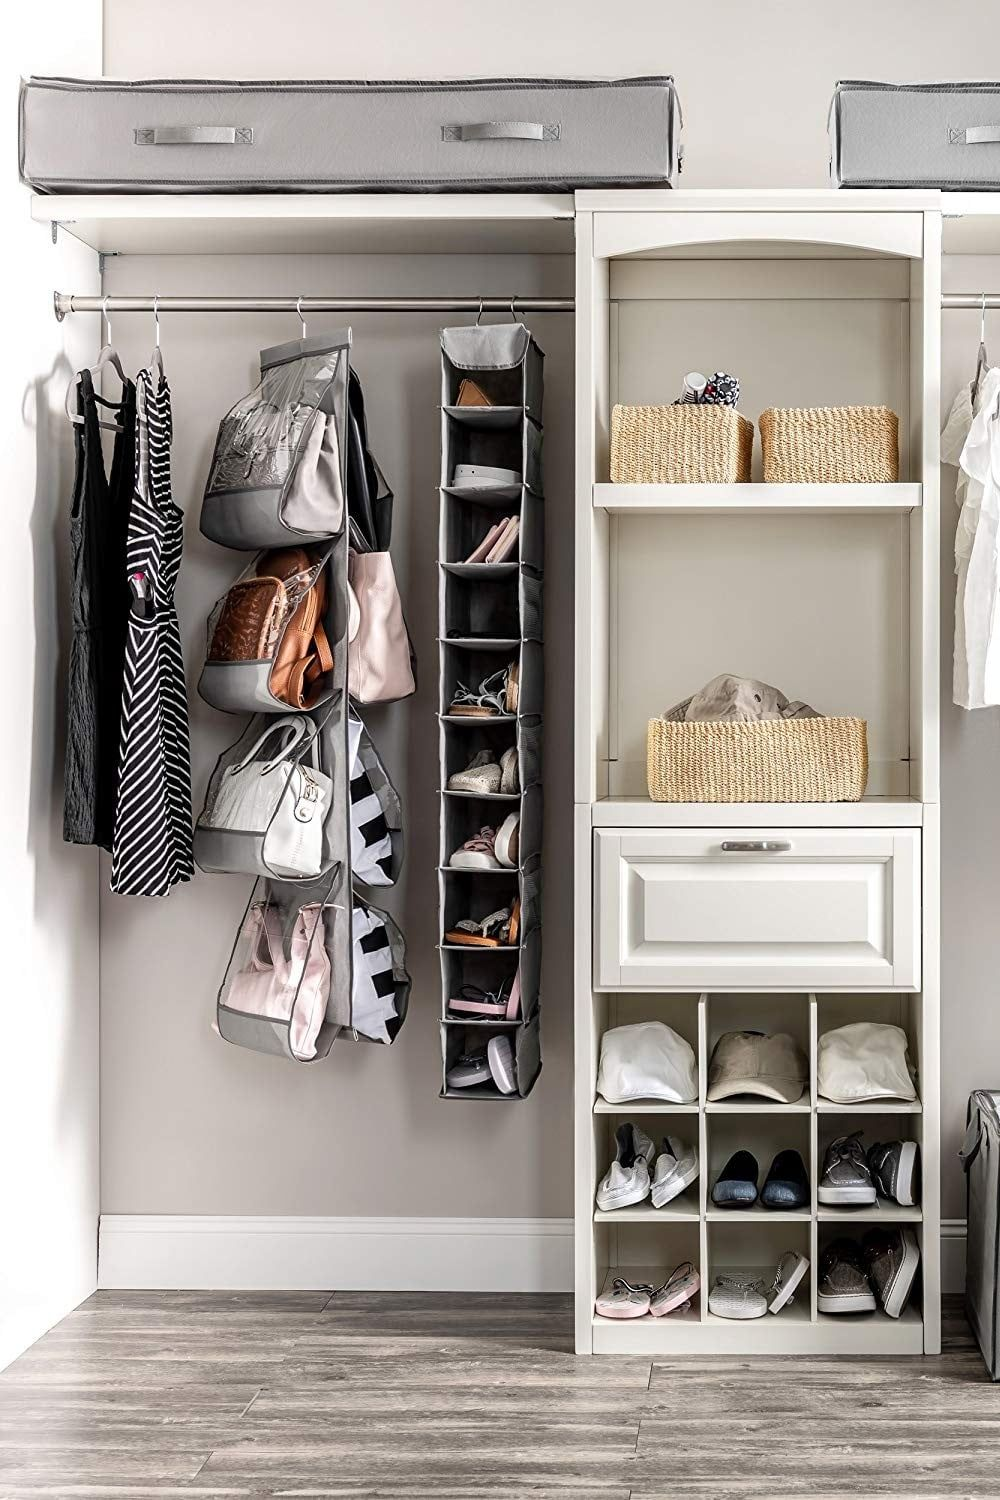 Your Messy Closet Is No Match For These 100 Nifty Organization Systems Let S Get Cleaning Closet Renovation Best Closet Organization Dorm Organization